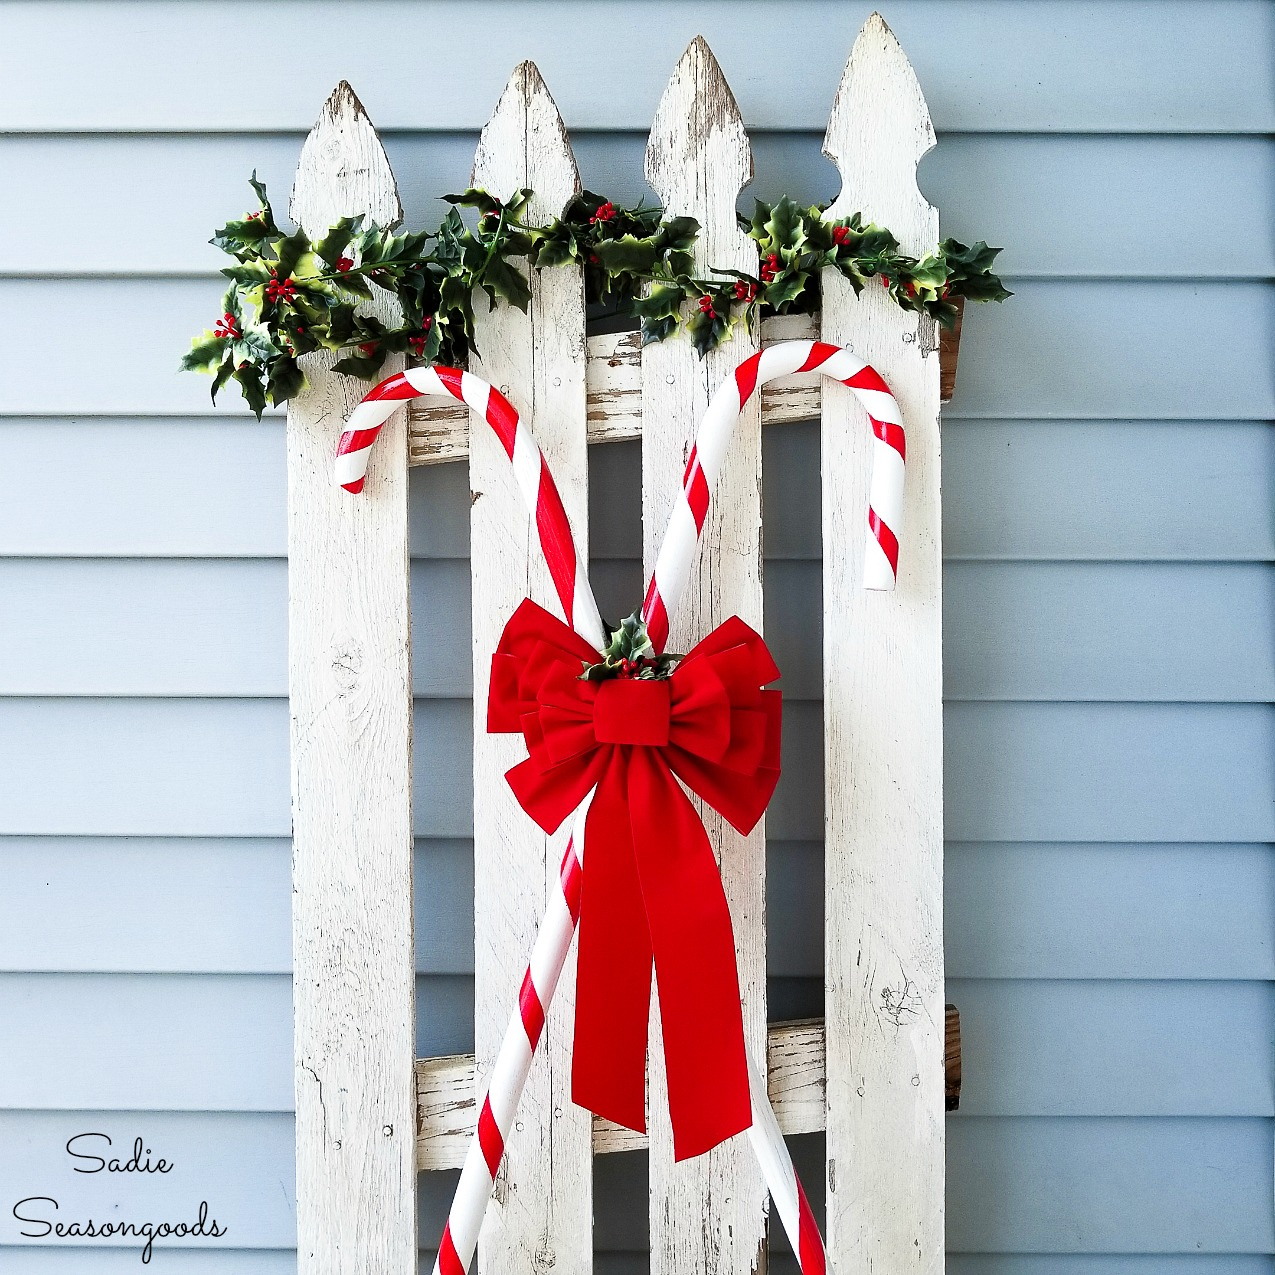 Candy Cane Decorations for Christmas with Wooden Walking Canes